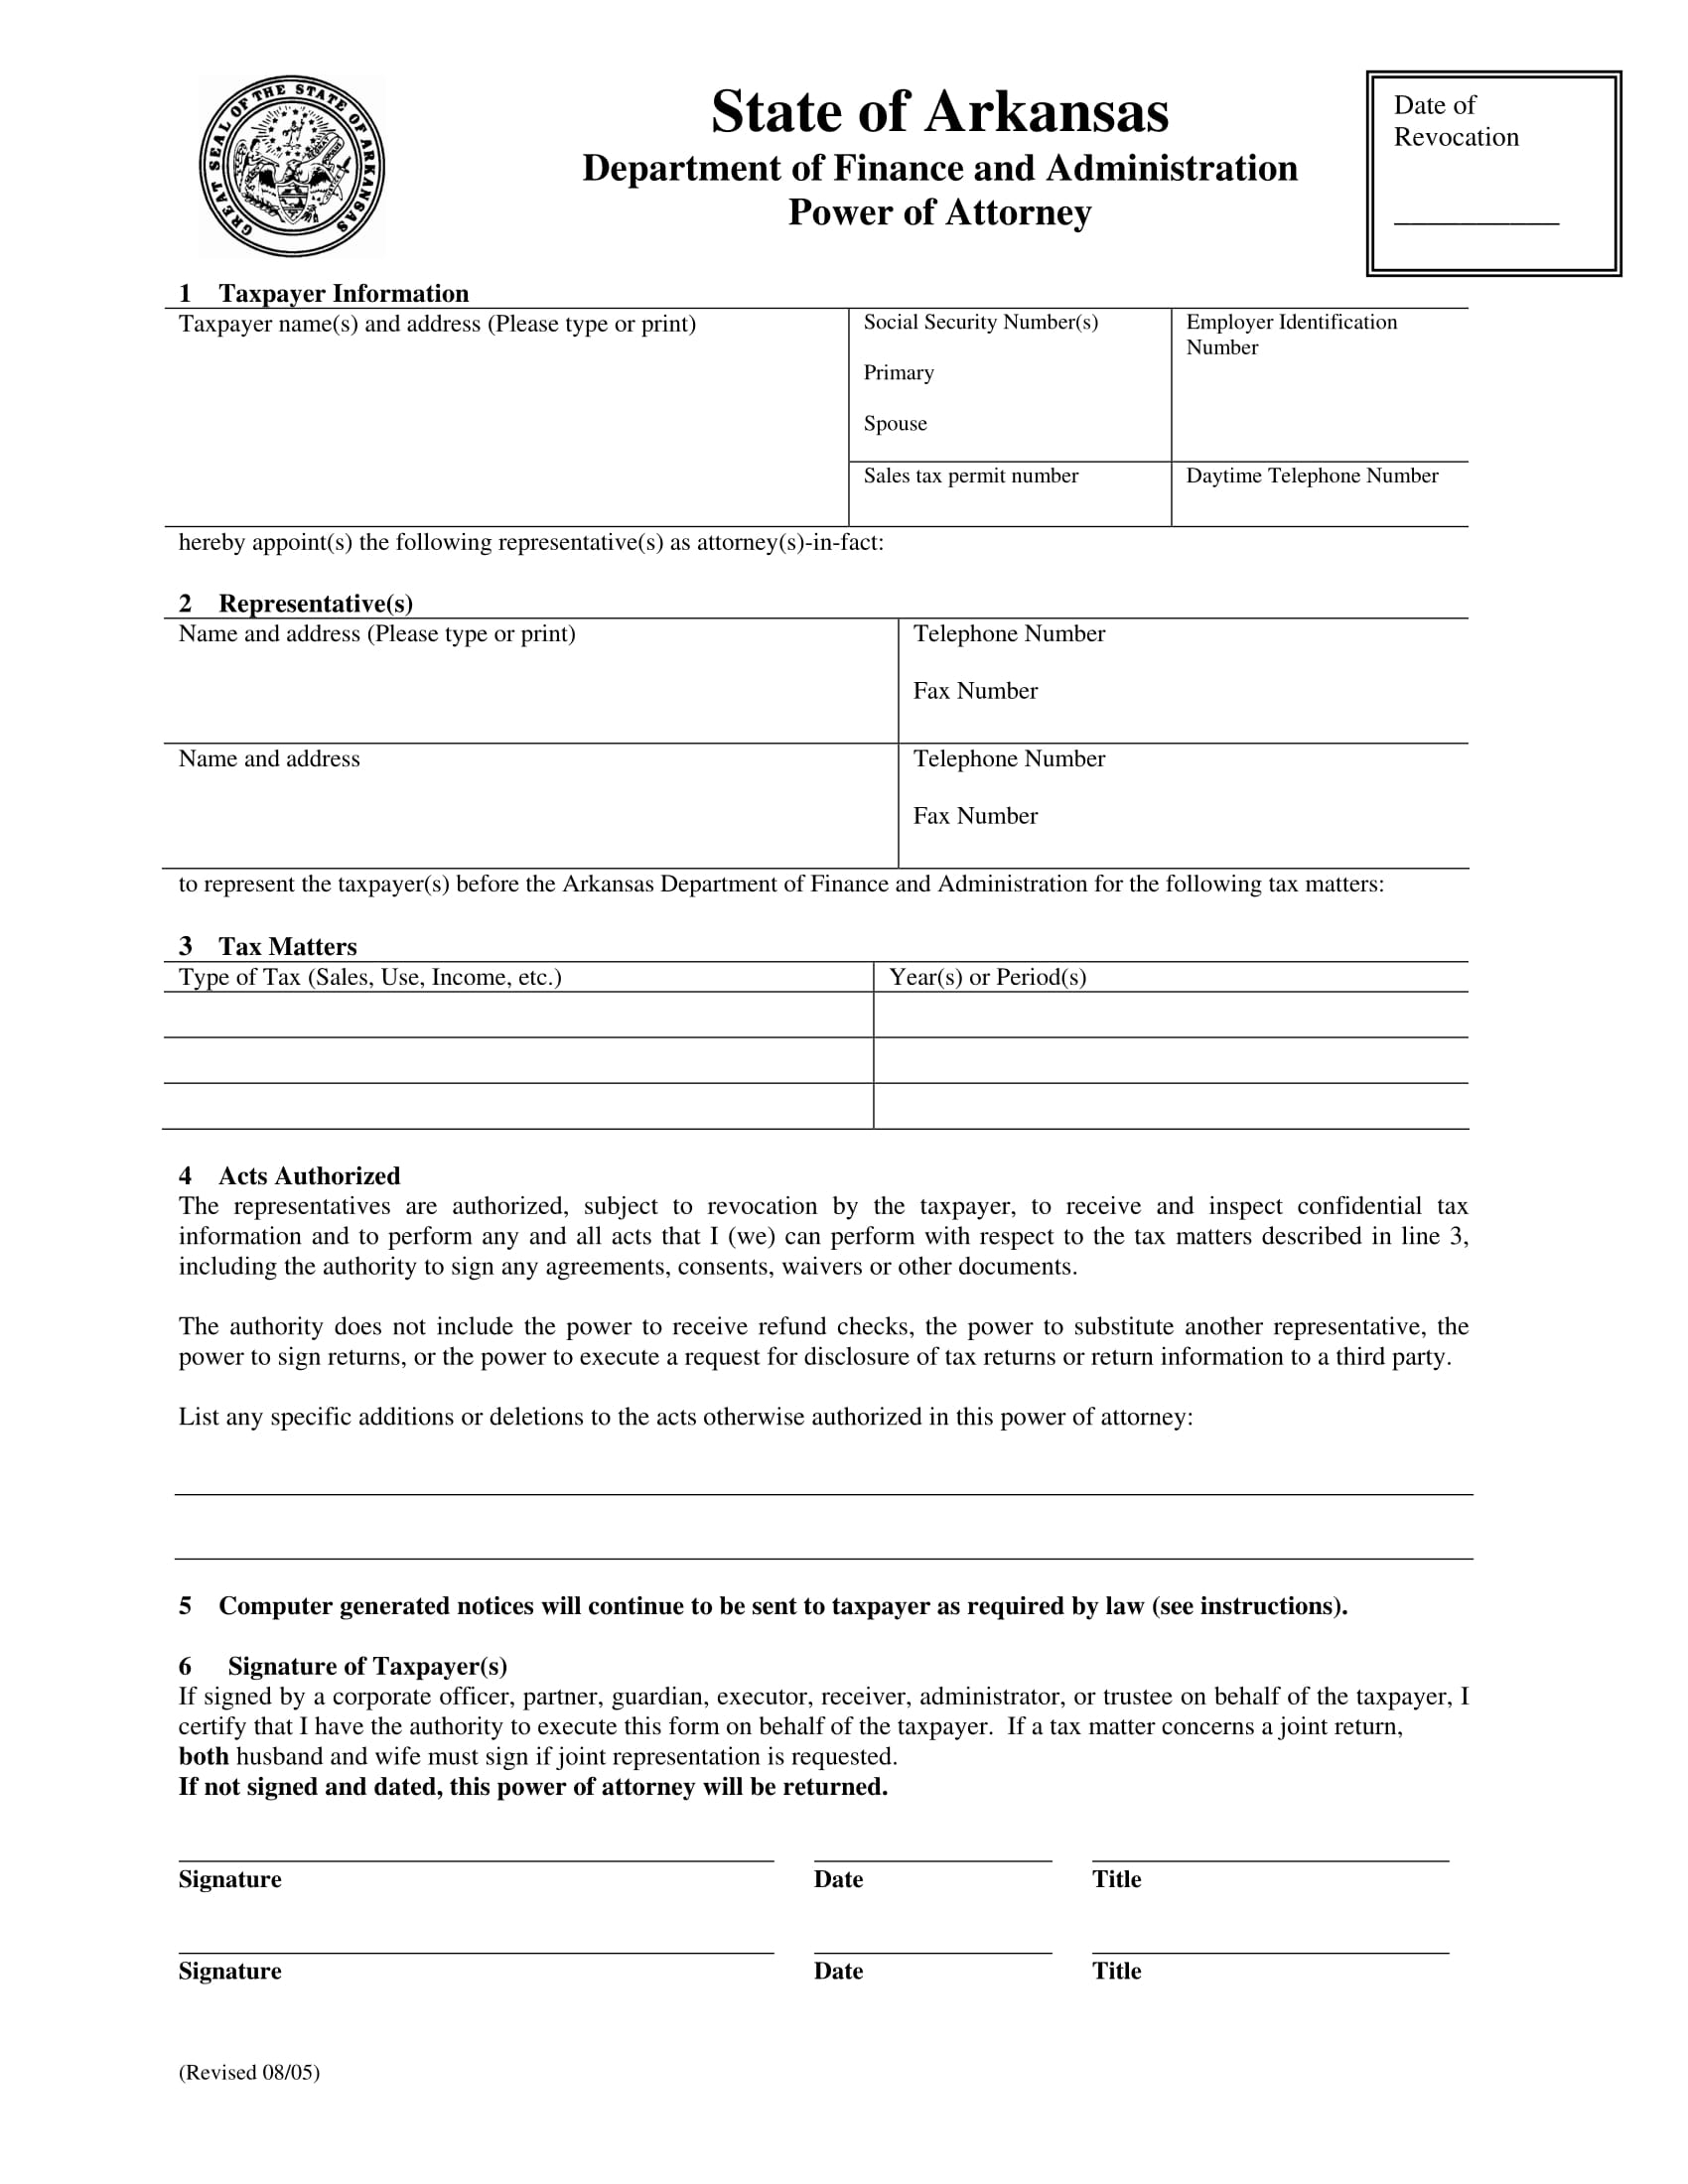 30 power of attorney forms by state arkansas poa 1 falaconquin